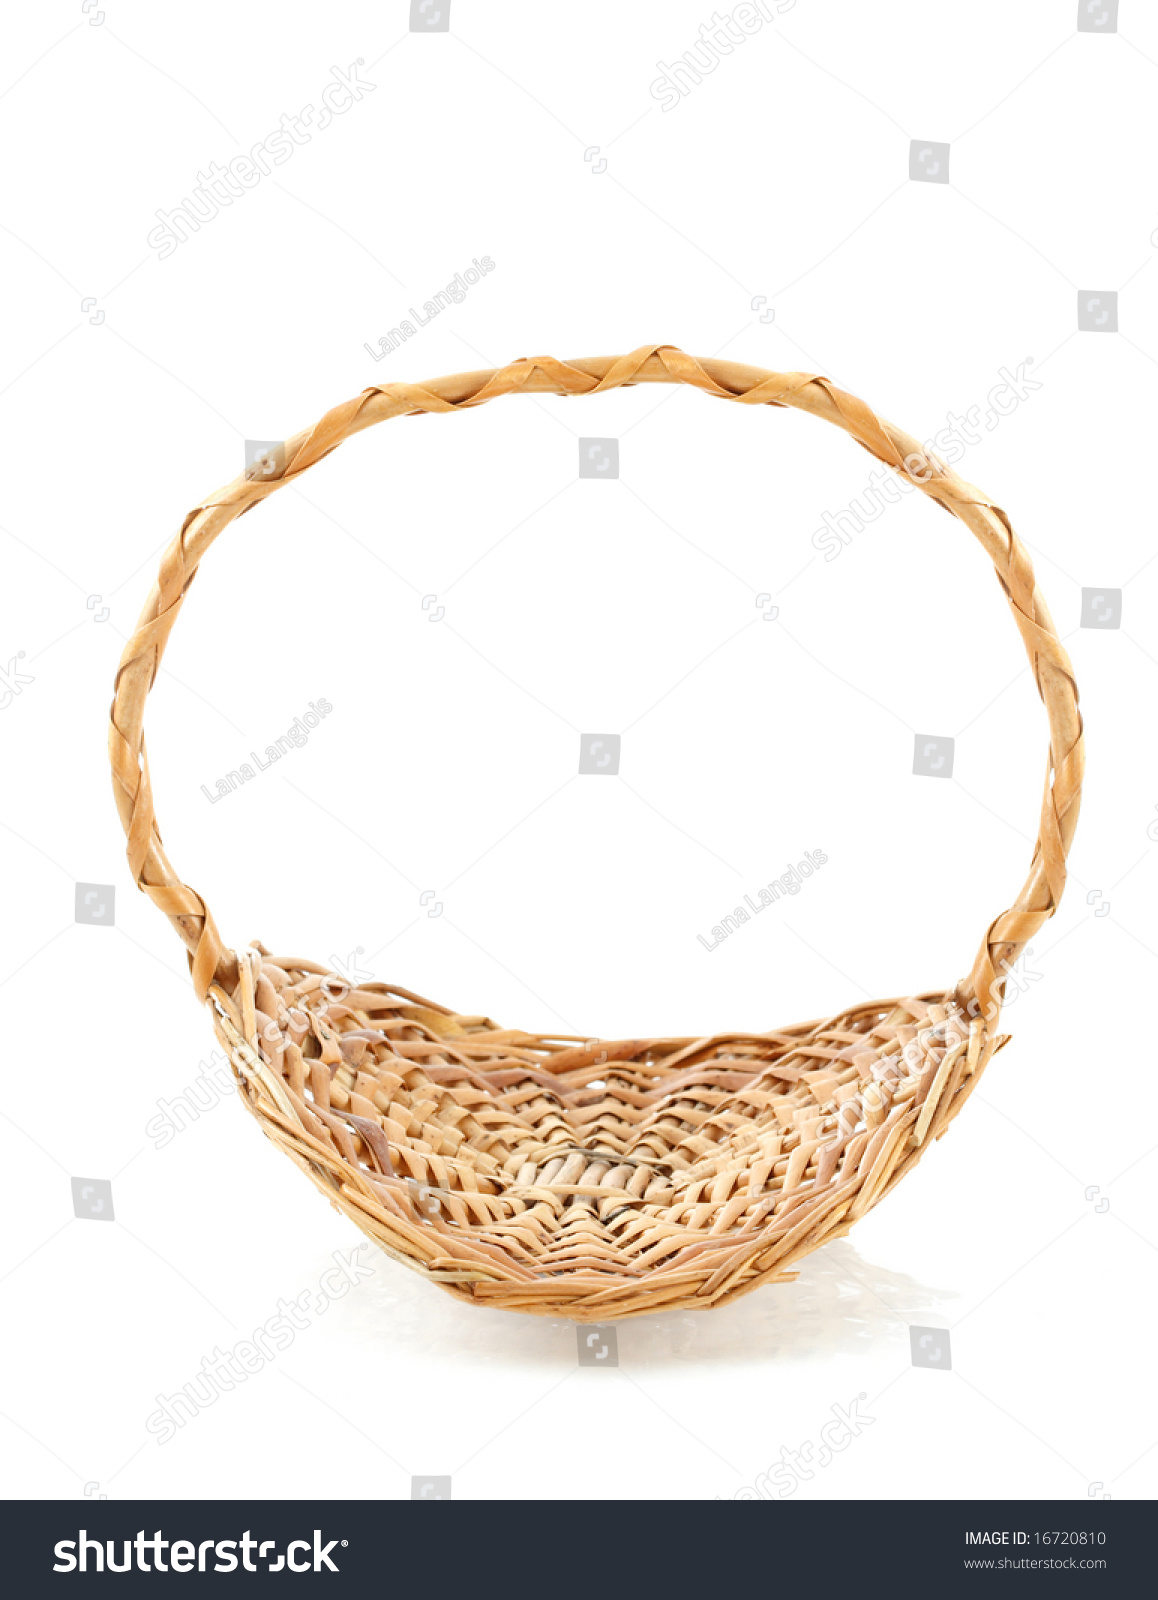 White wicker baskets with handle - Wicker Basket With Handle White Background